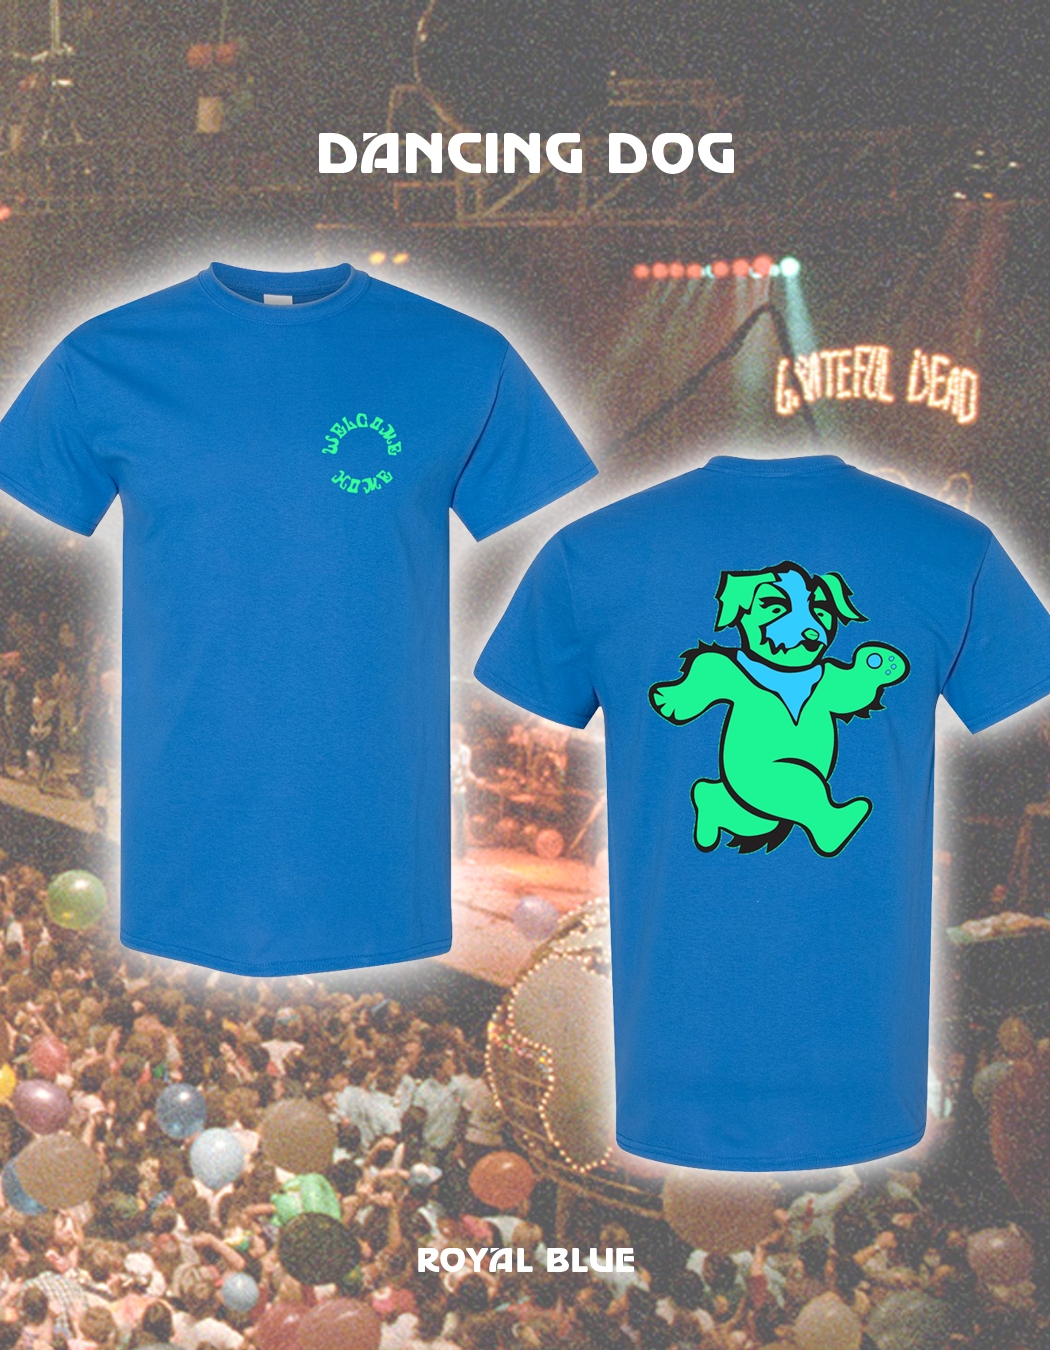 The Dancing Dog T-Shirt